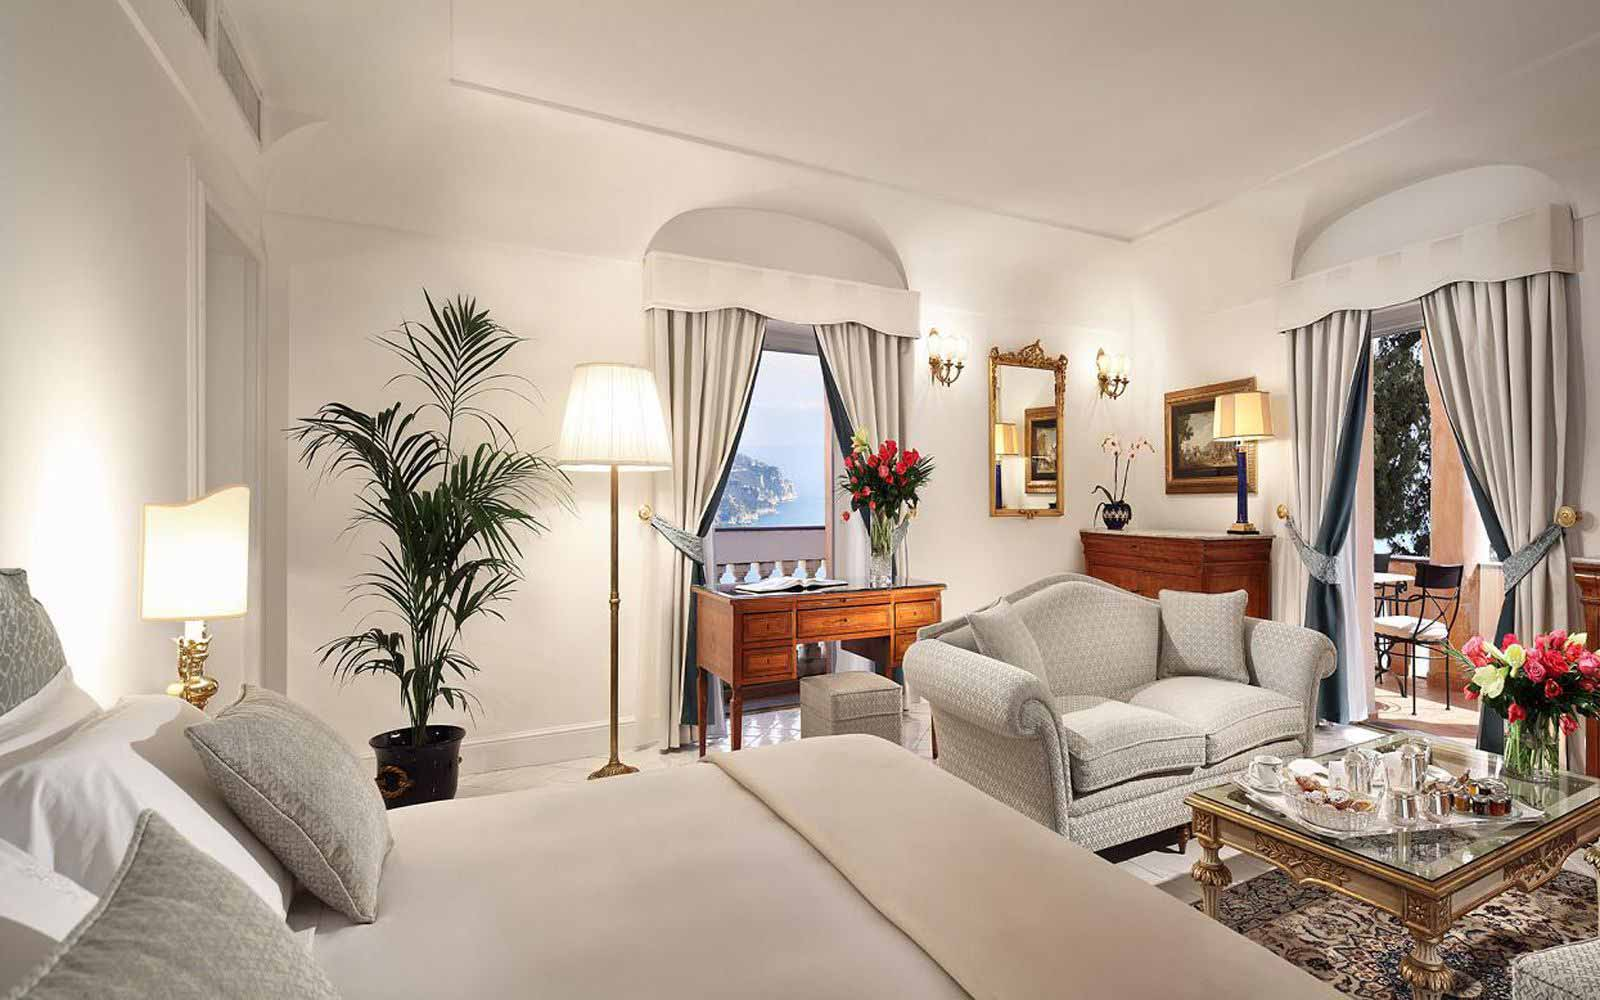 Deluxe Room with Sea View at Palazzo Avino